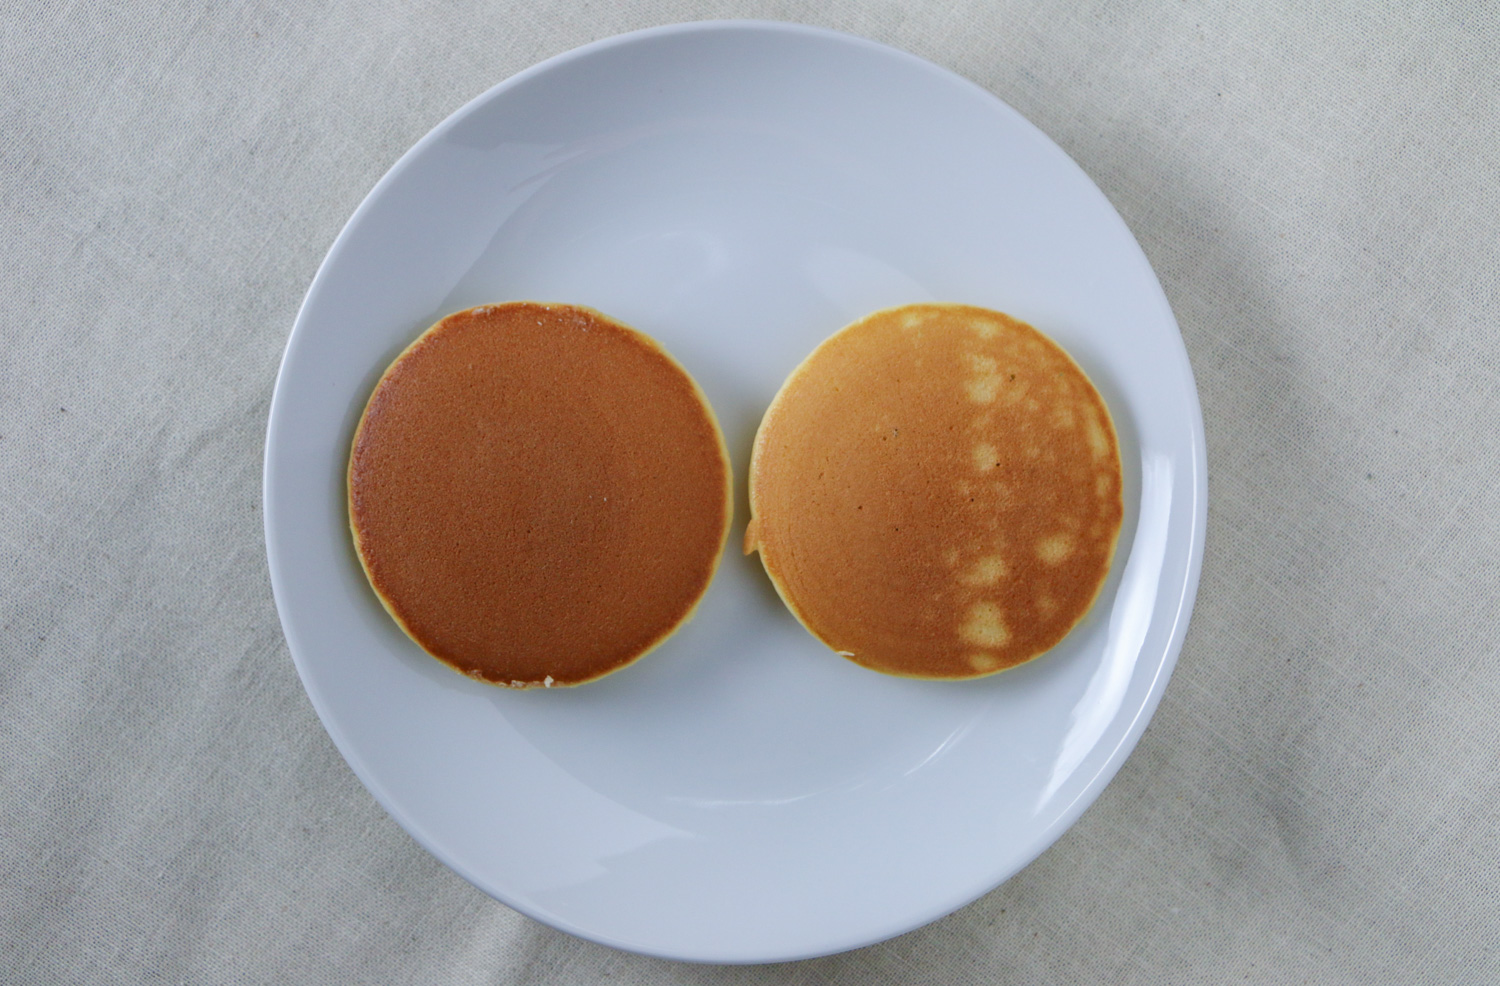 Difference between a griddle sprayed with oil and on that has been wiped clean